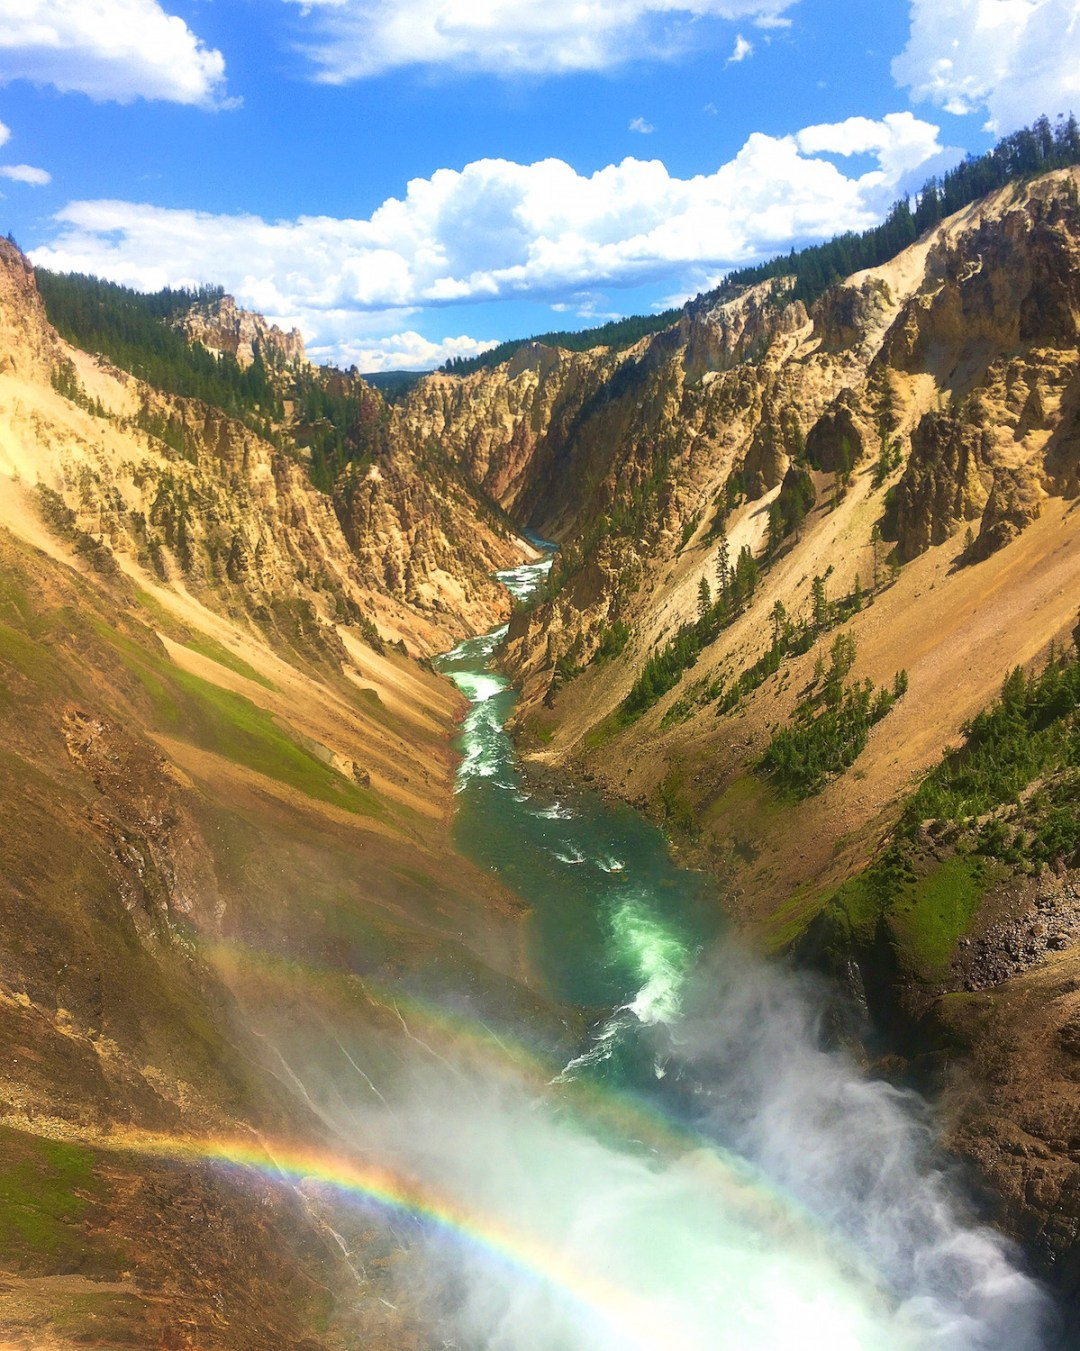 12 DAY ITINERARY FOR HIKING MONTANA & WYOMING NATIONAL PARKS